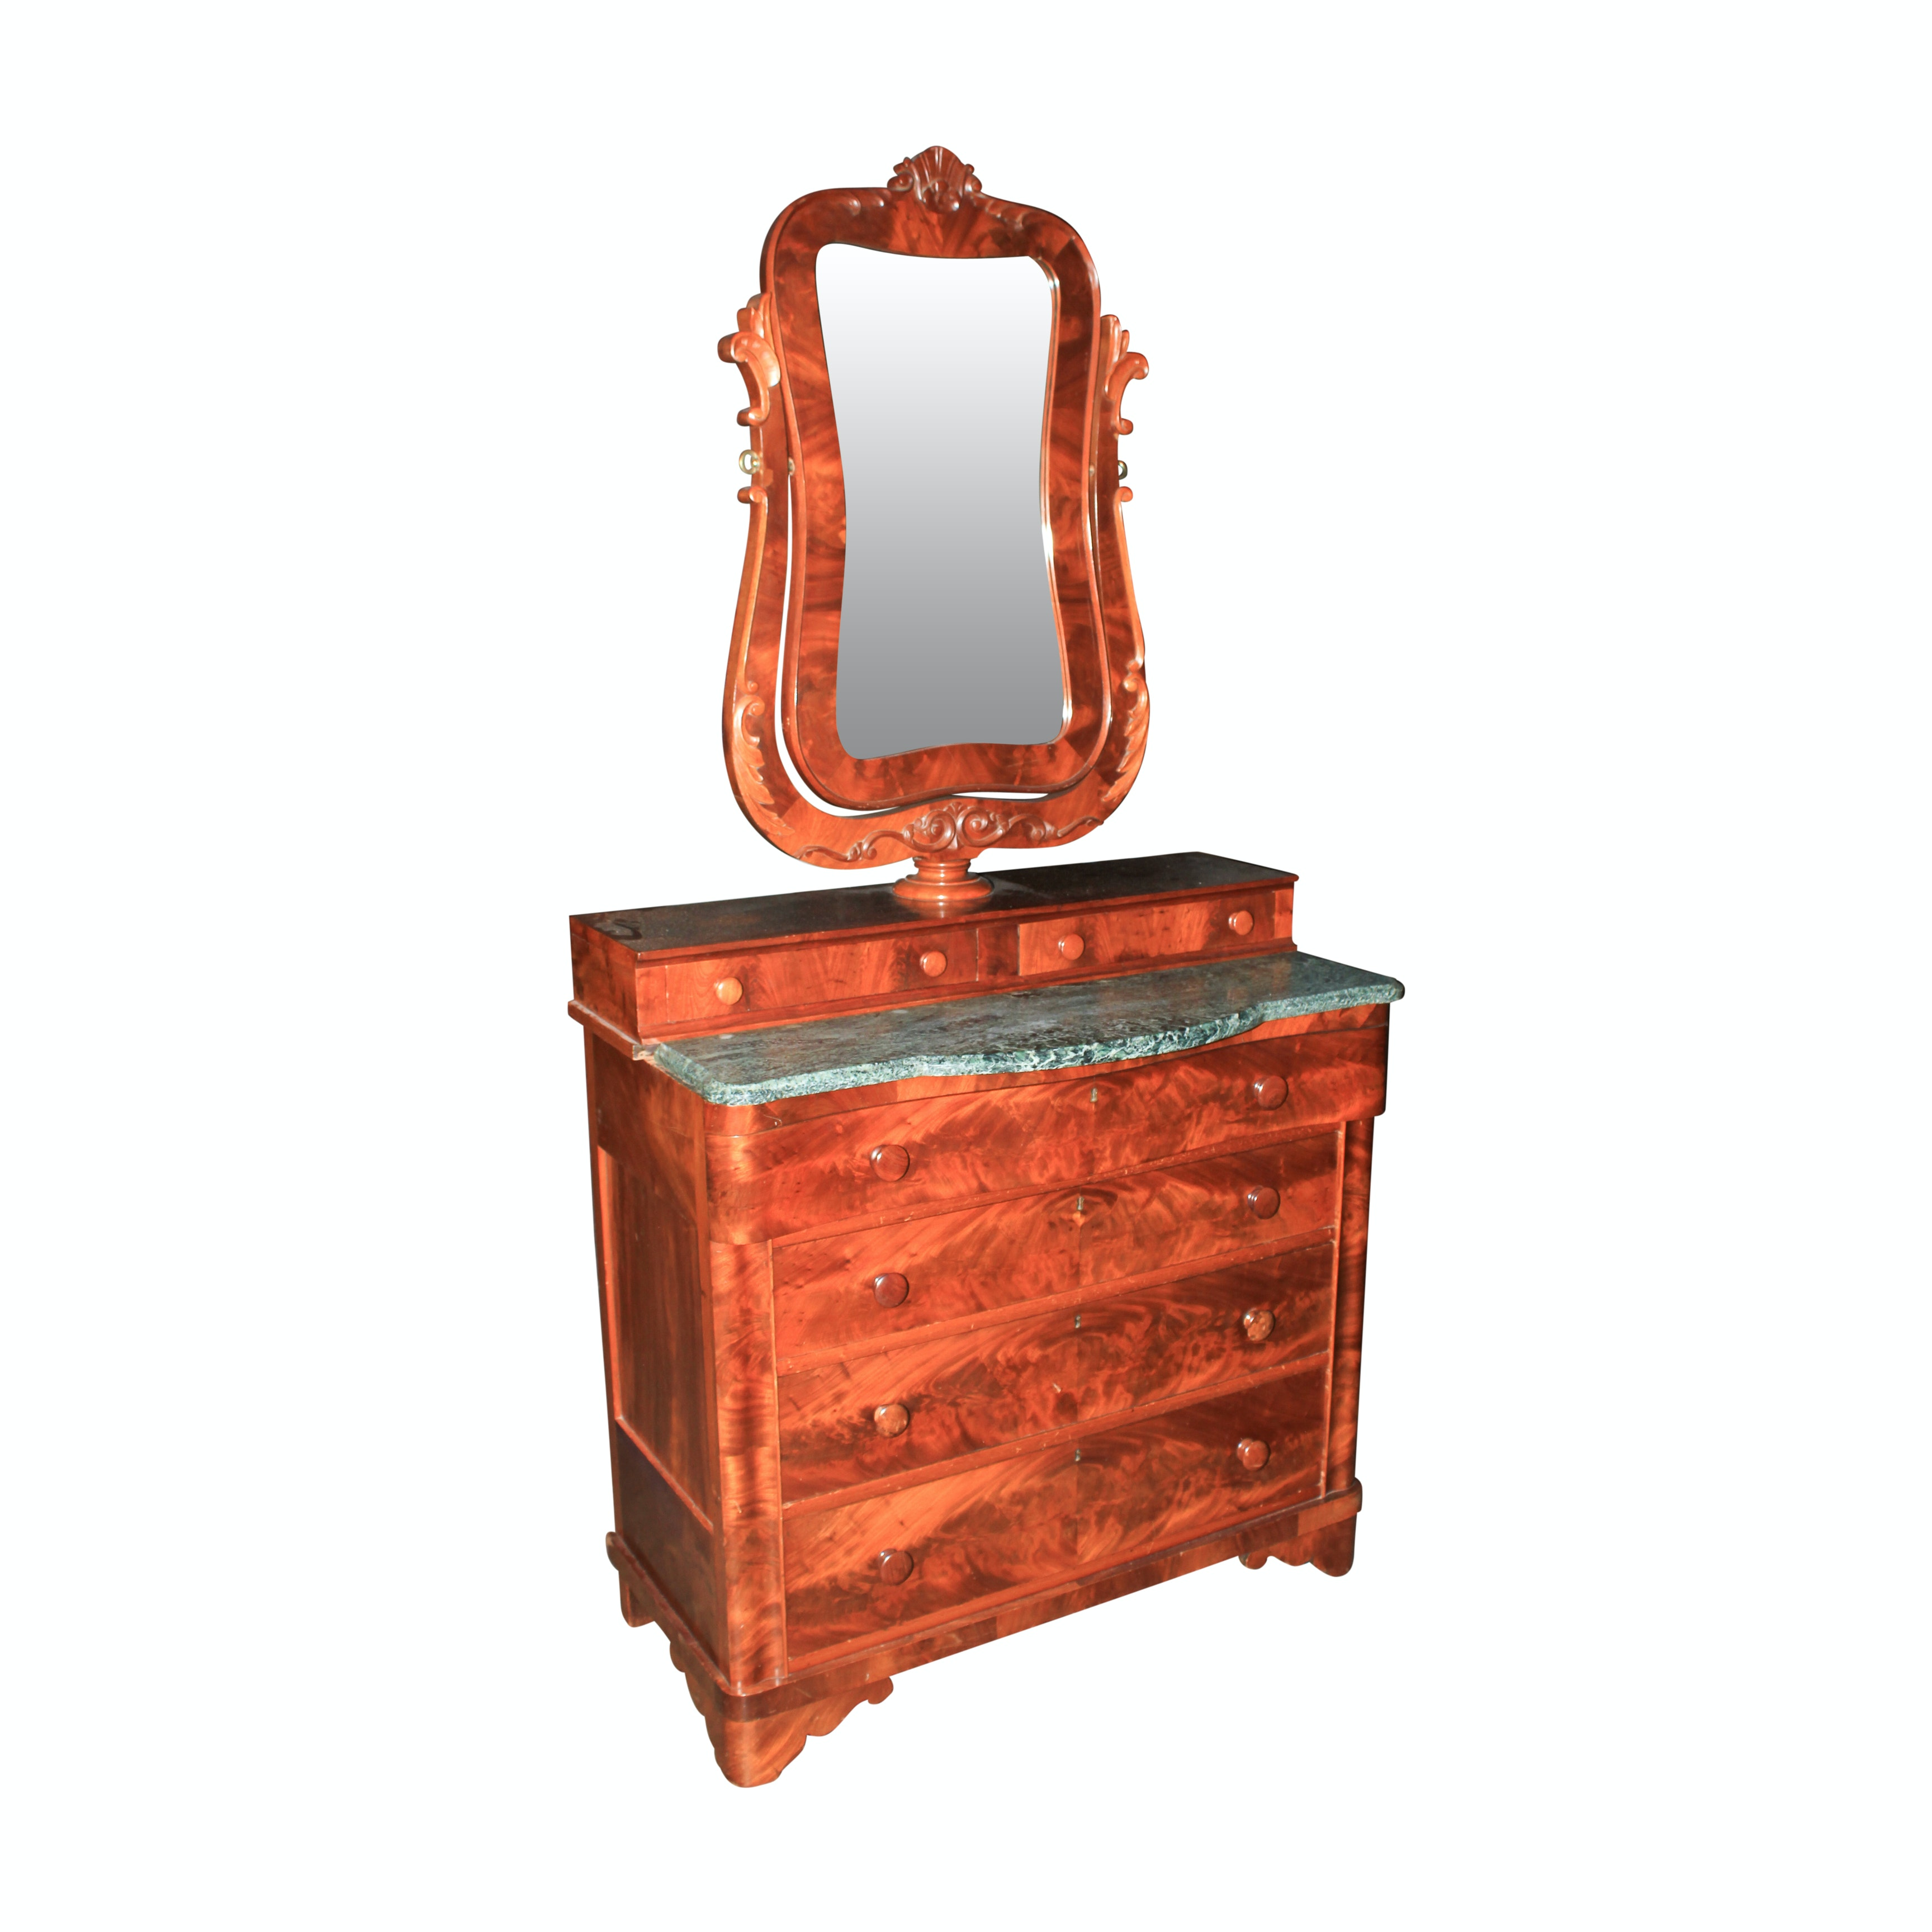 Antique Victorian Mahogany Marble Top Chest of Drawers with Mirror